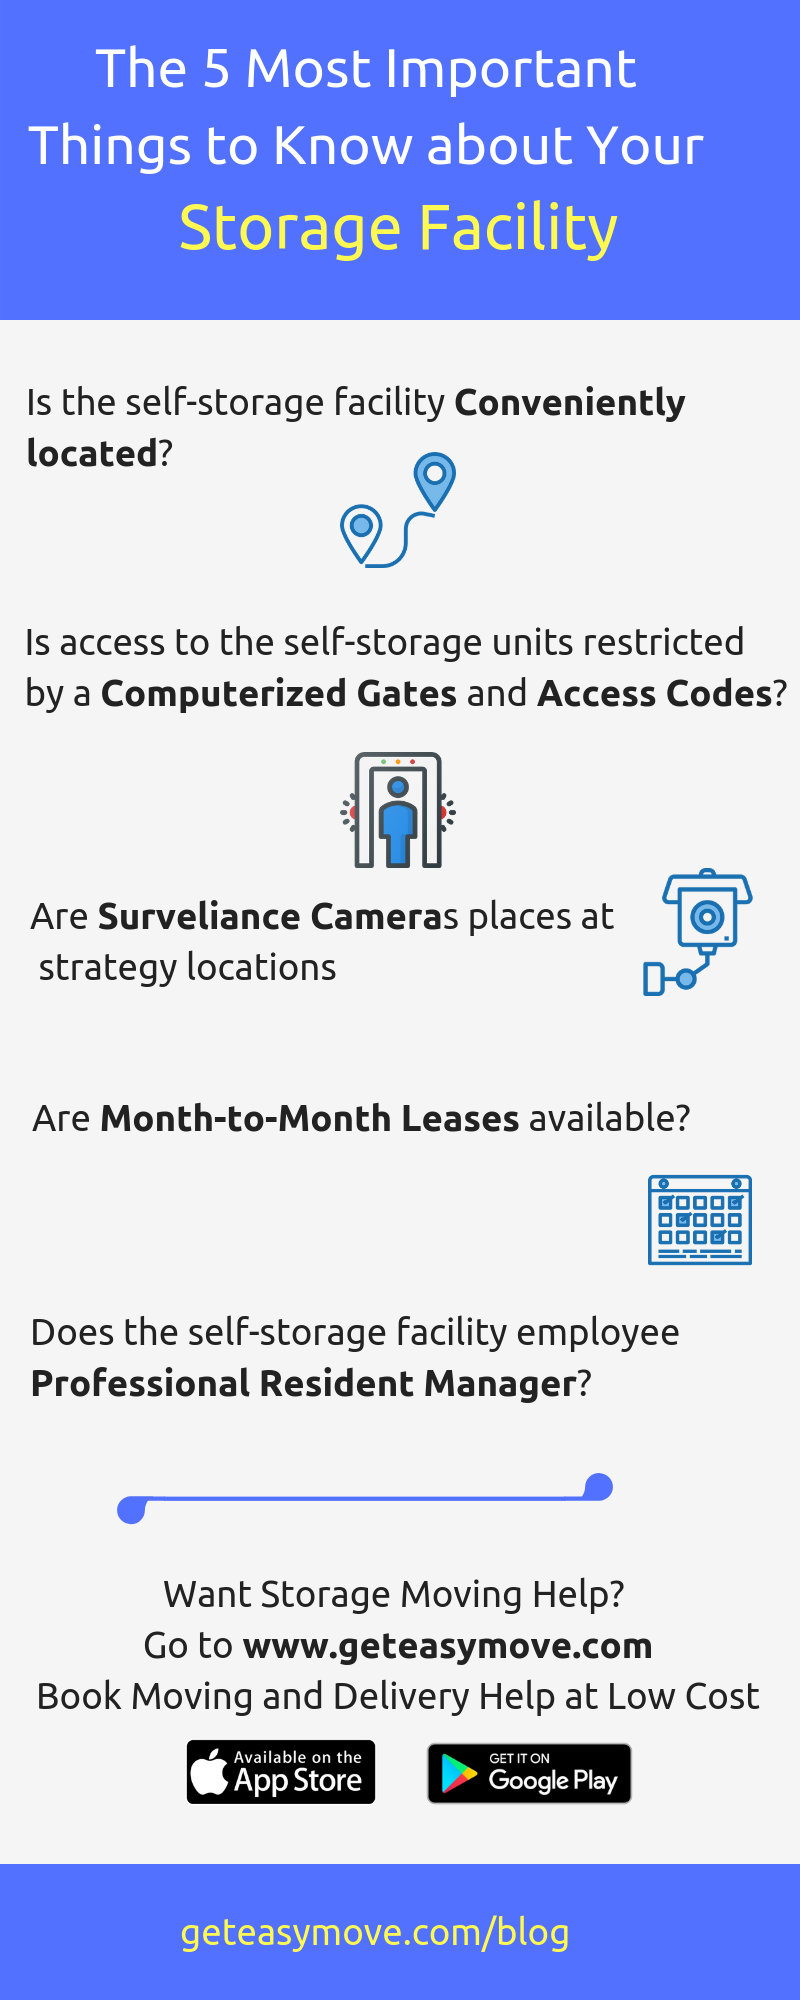 The most Important Things to know about Storage Facility